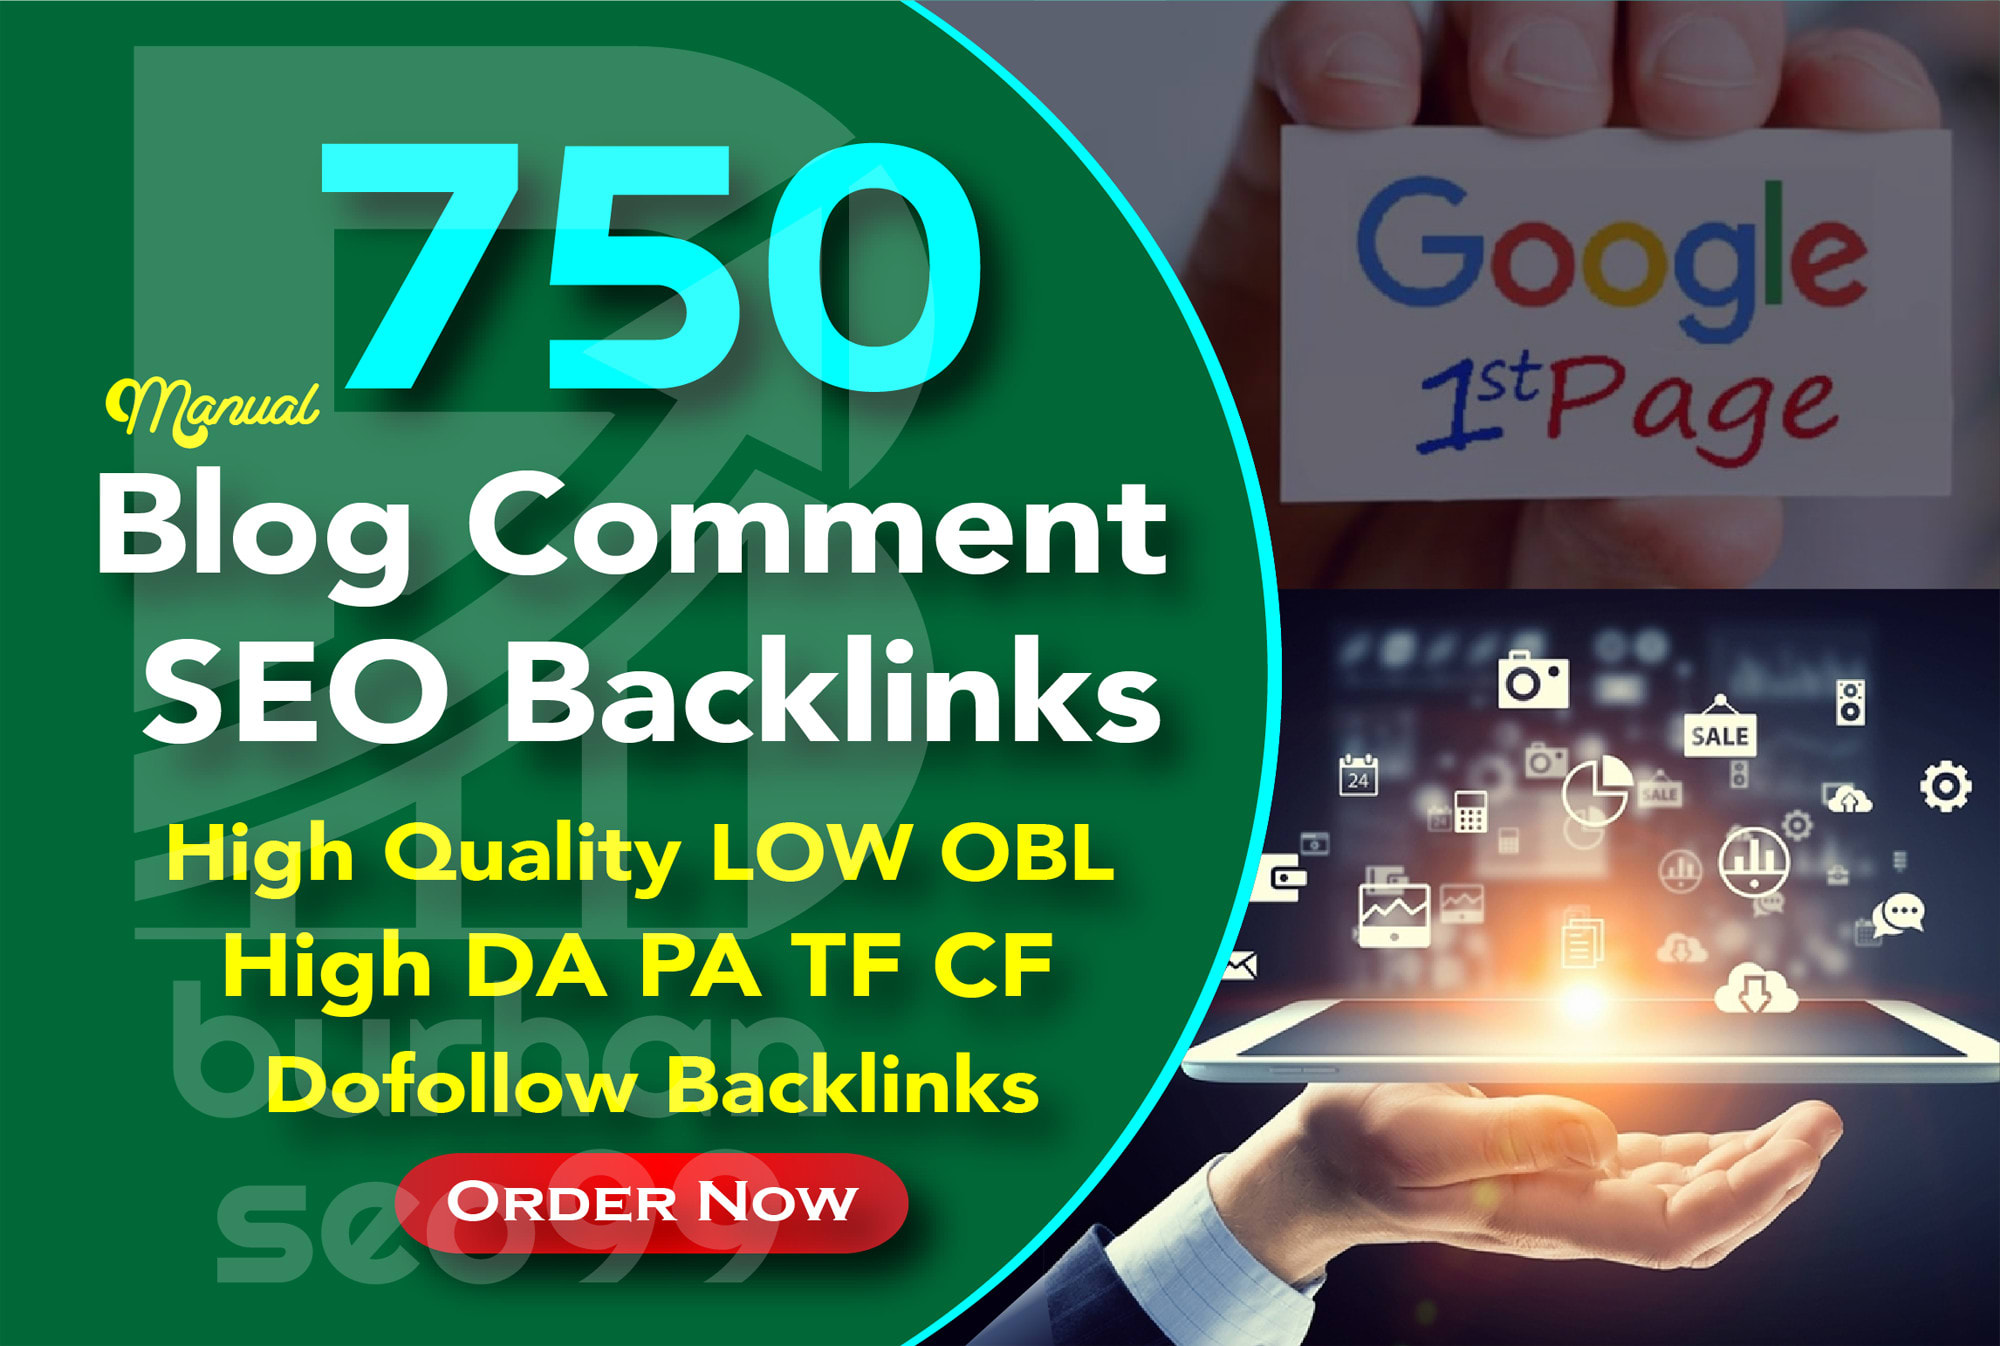 I will create 750 dofollow blog comments high quality seo backlinks